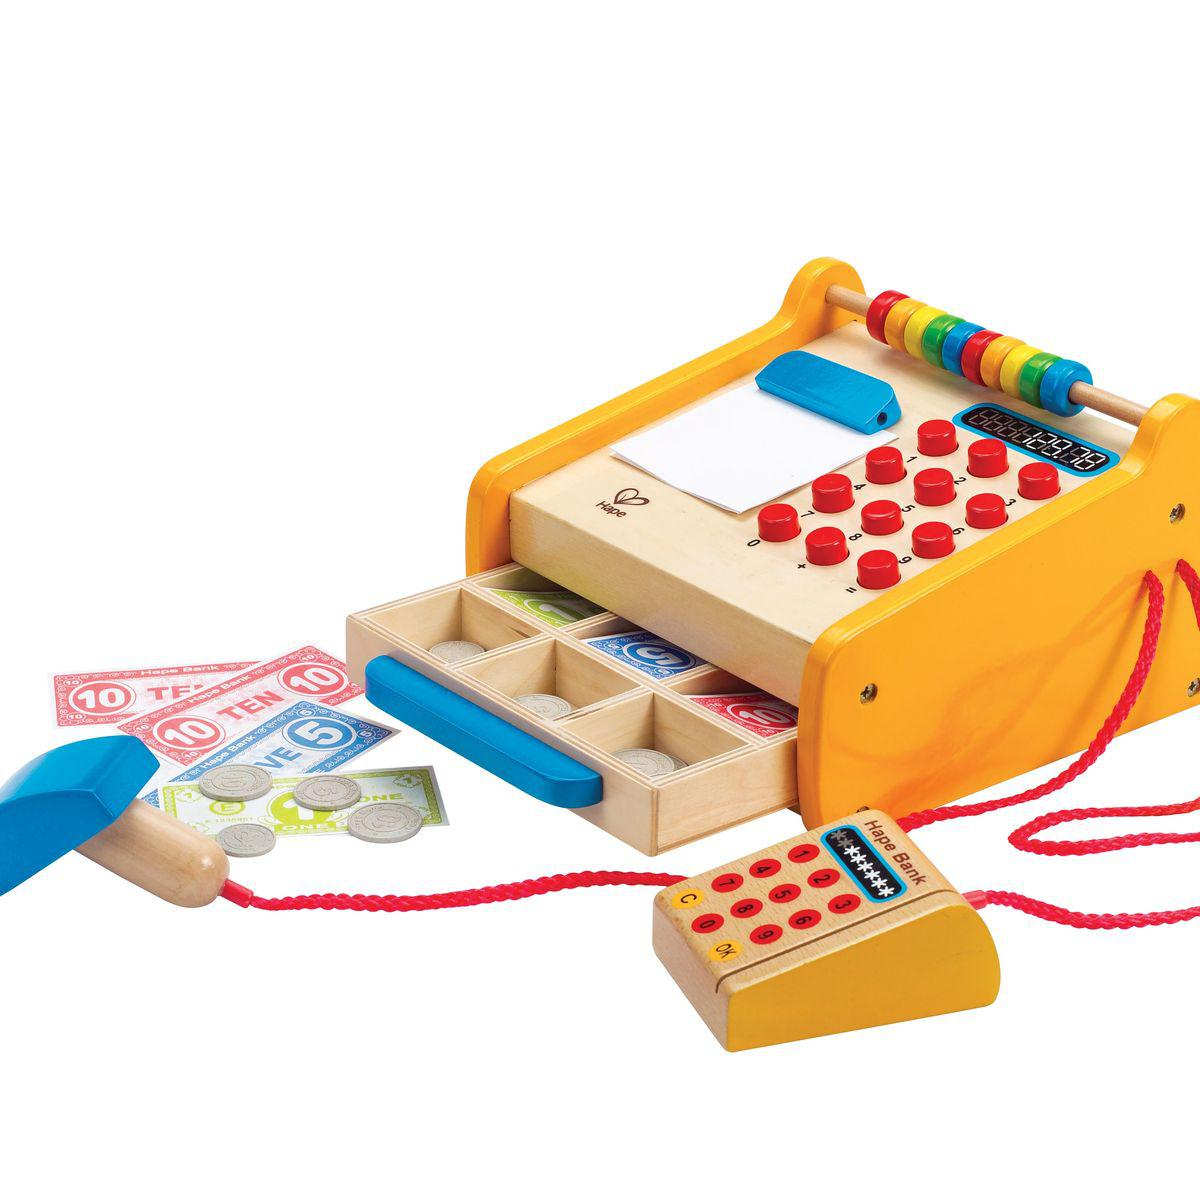 Jeu imitation CHECKOUT REGISTER Hape